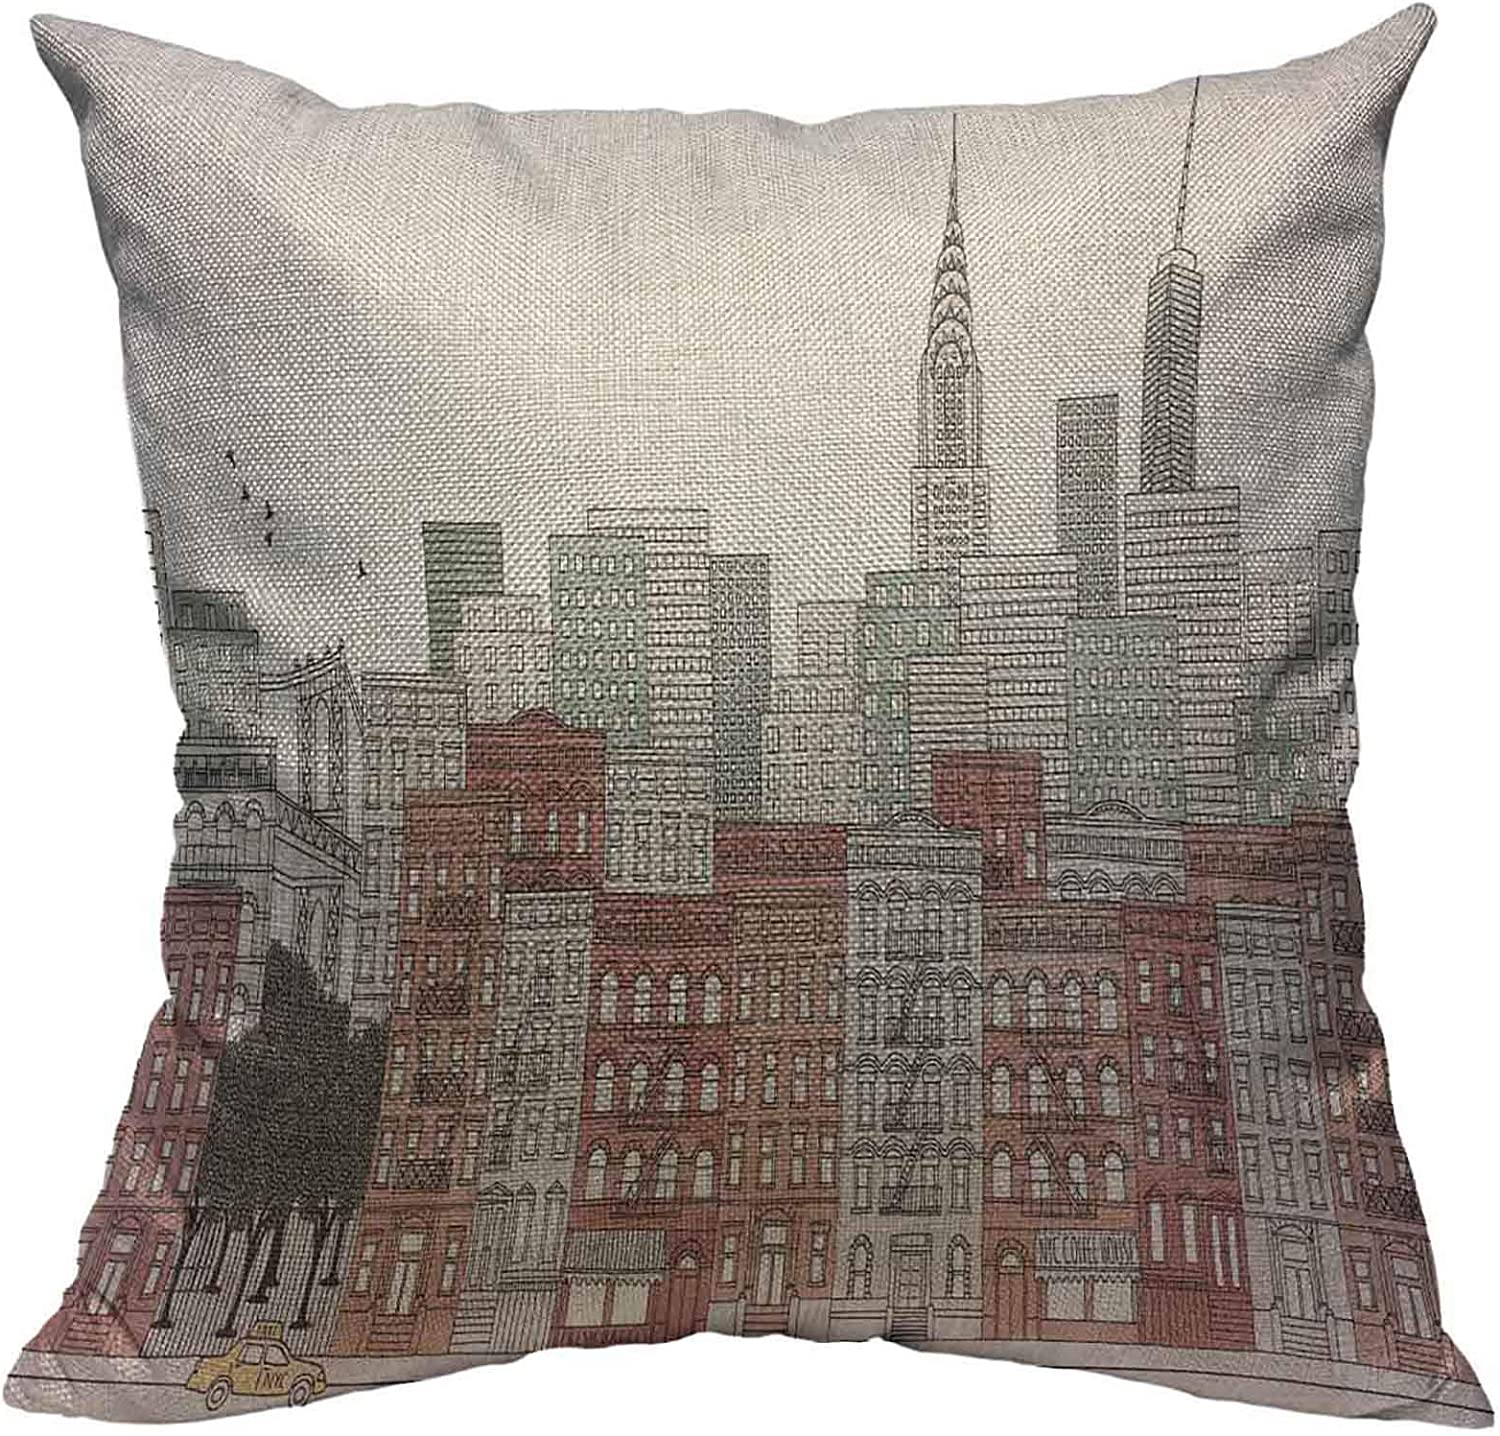 VERSUSWOLF Throw Pillow Covers Colorful America New York City of The City'S Skyline Digitally Colored Ink Apartment Architecture Cotton Linen Decorative Square Pillowcases Cushion Cover 18 X 18 Inch